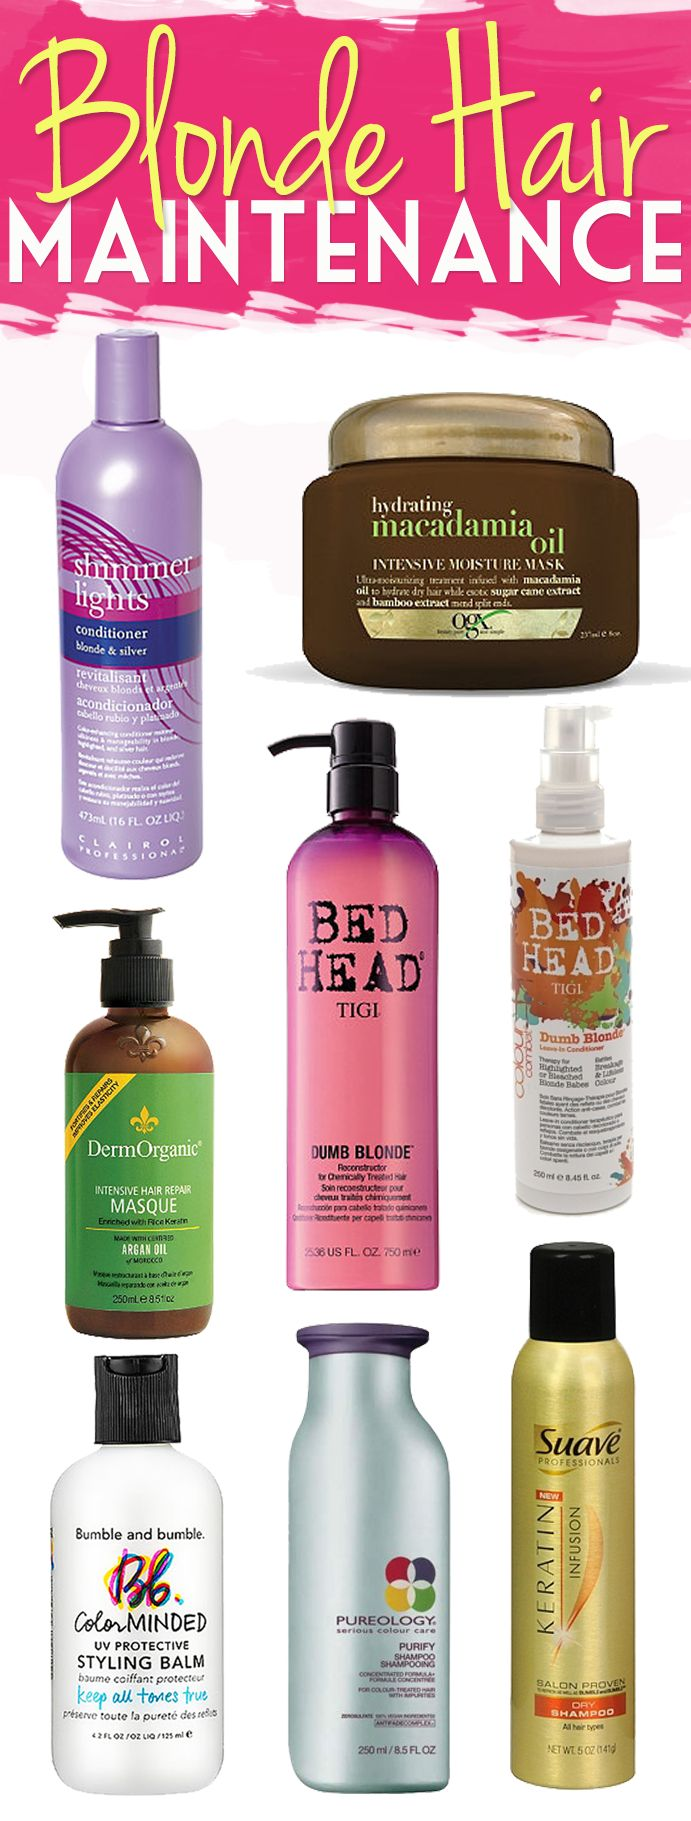 How To Maintain Blonde Hair! Tips & Tricks just for you! What products should you be using & how often to use them. #hair #beauty #blondehair